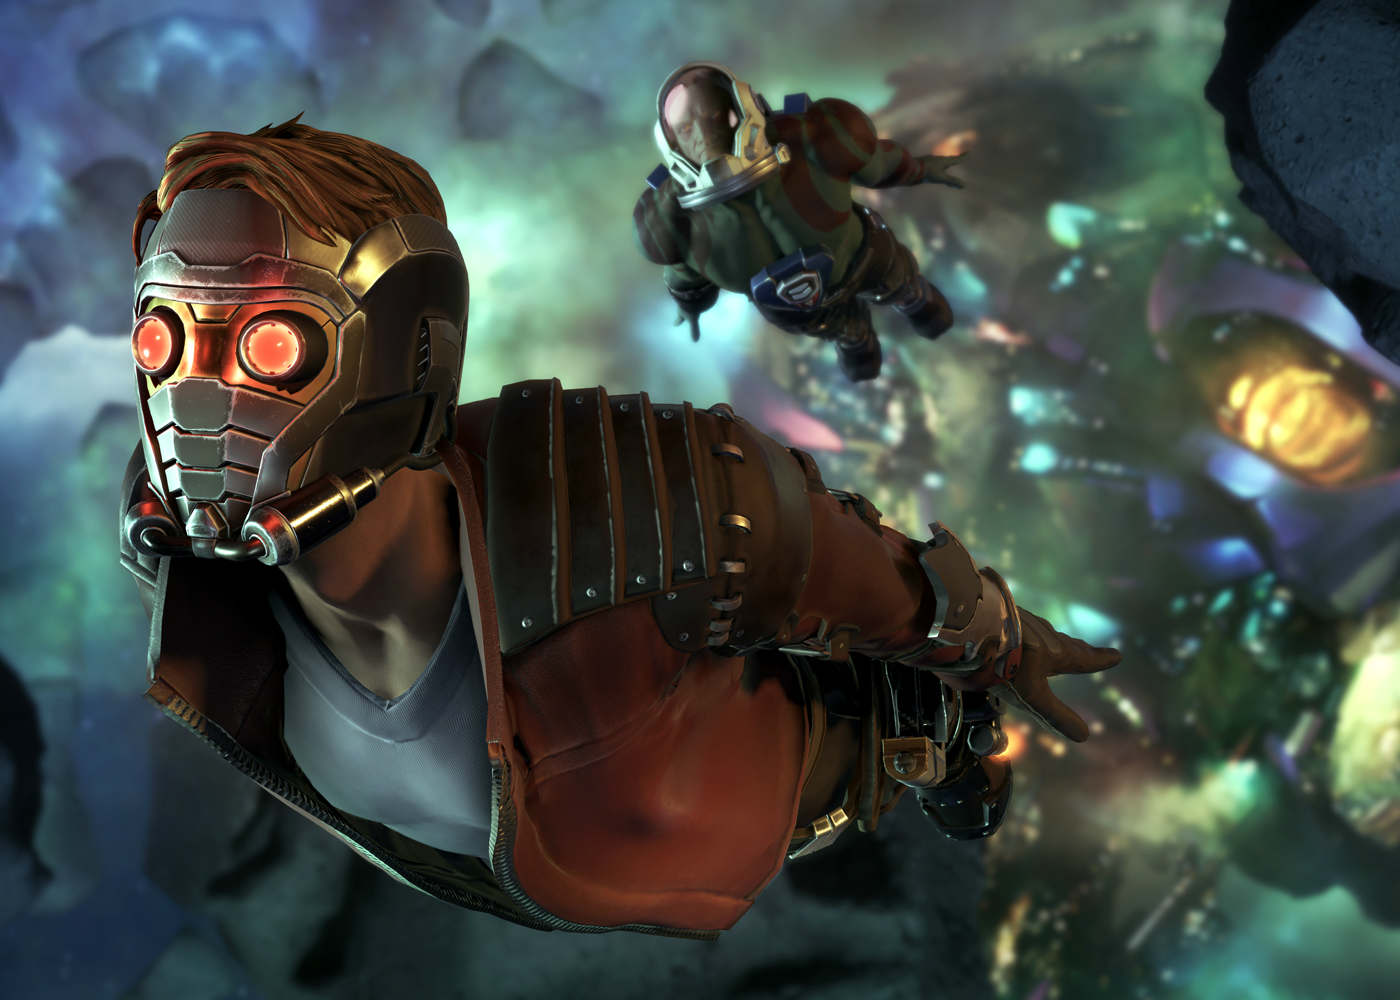 Guardians of the Galaxy: A Telltale Series Episode 1 Hits All the Right Notes